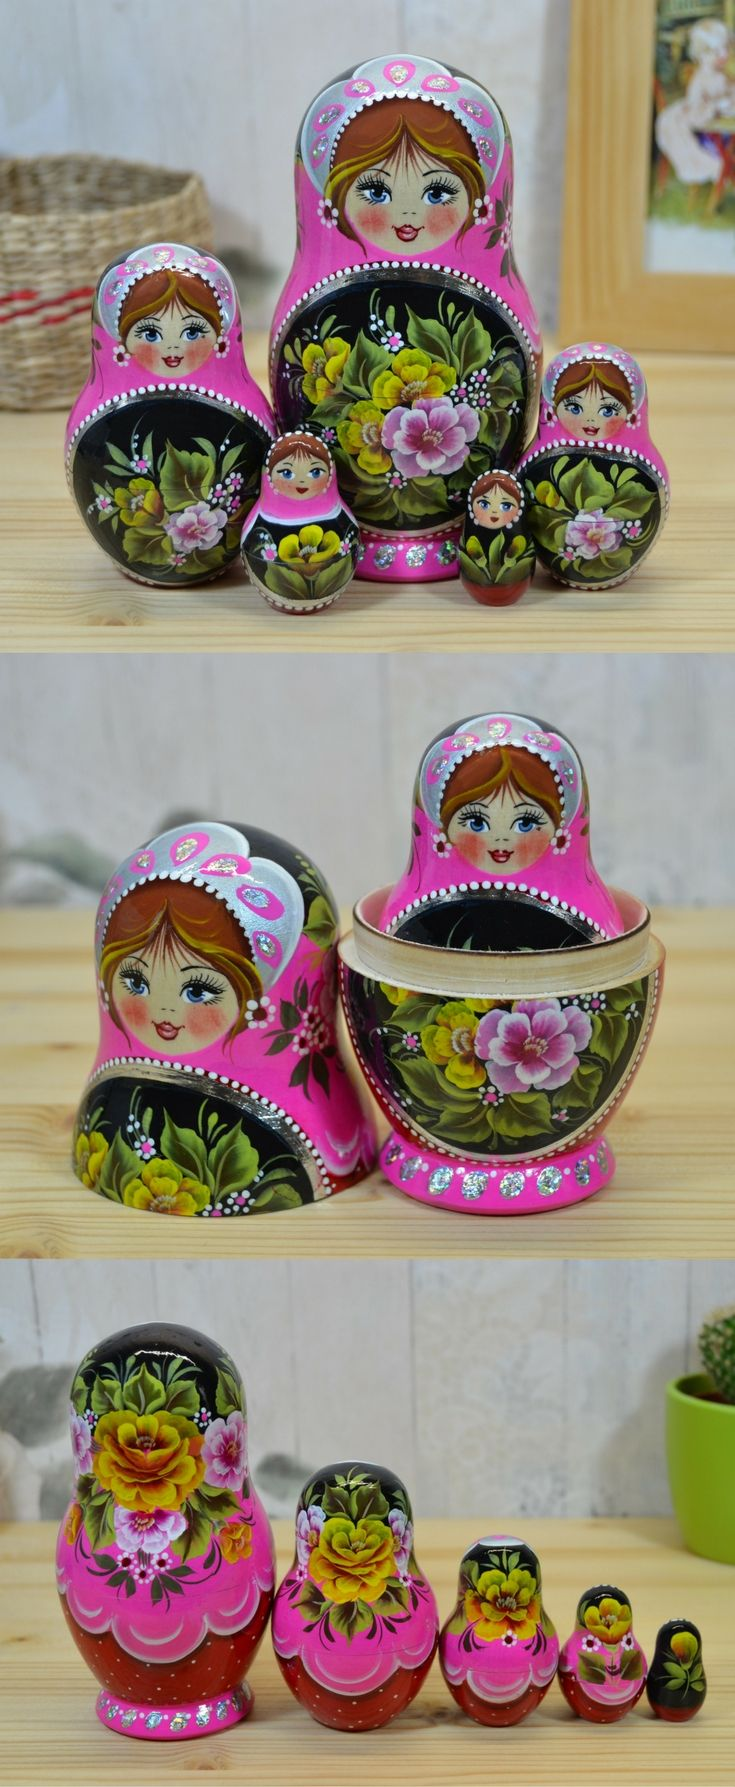 russian babushka doll in pink and black design